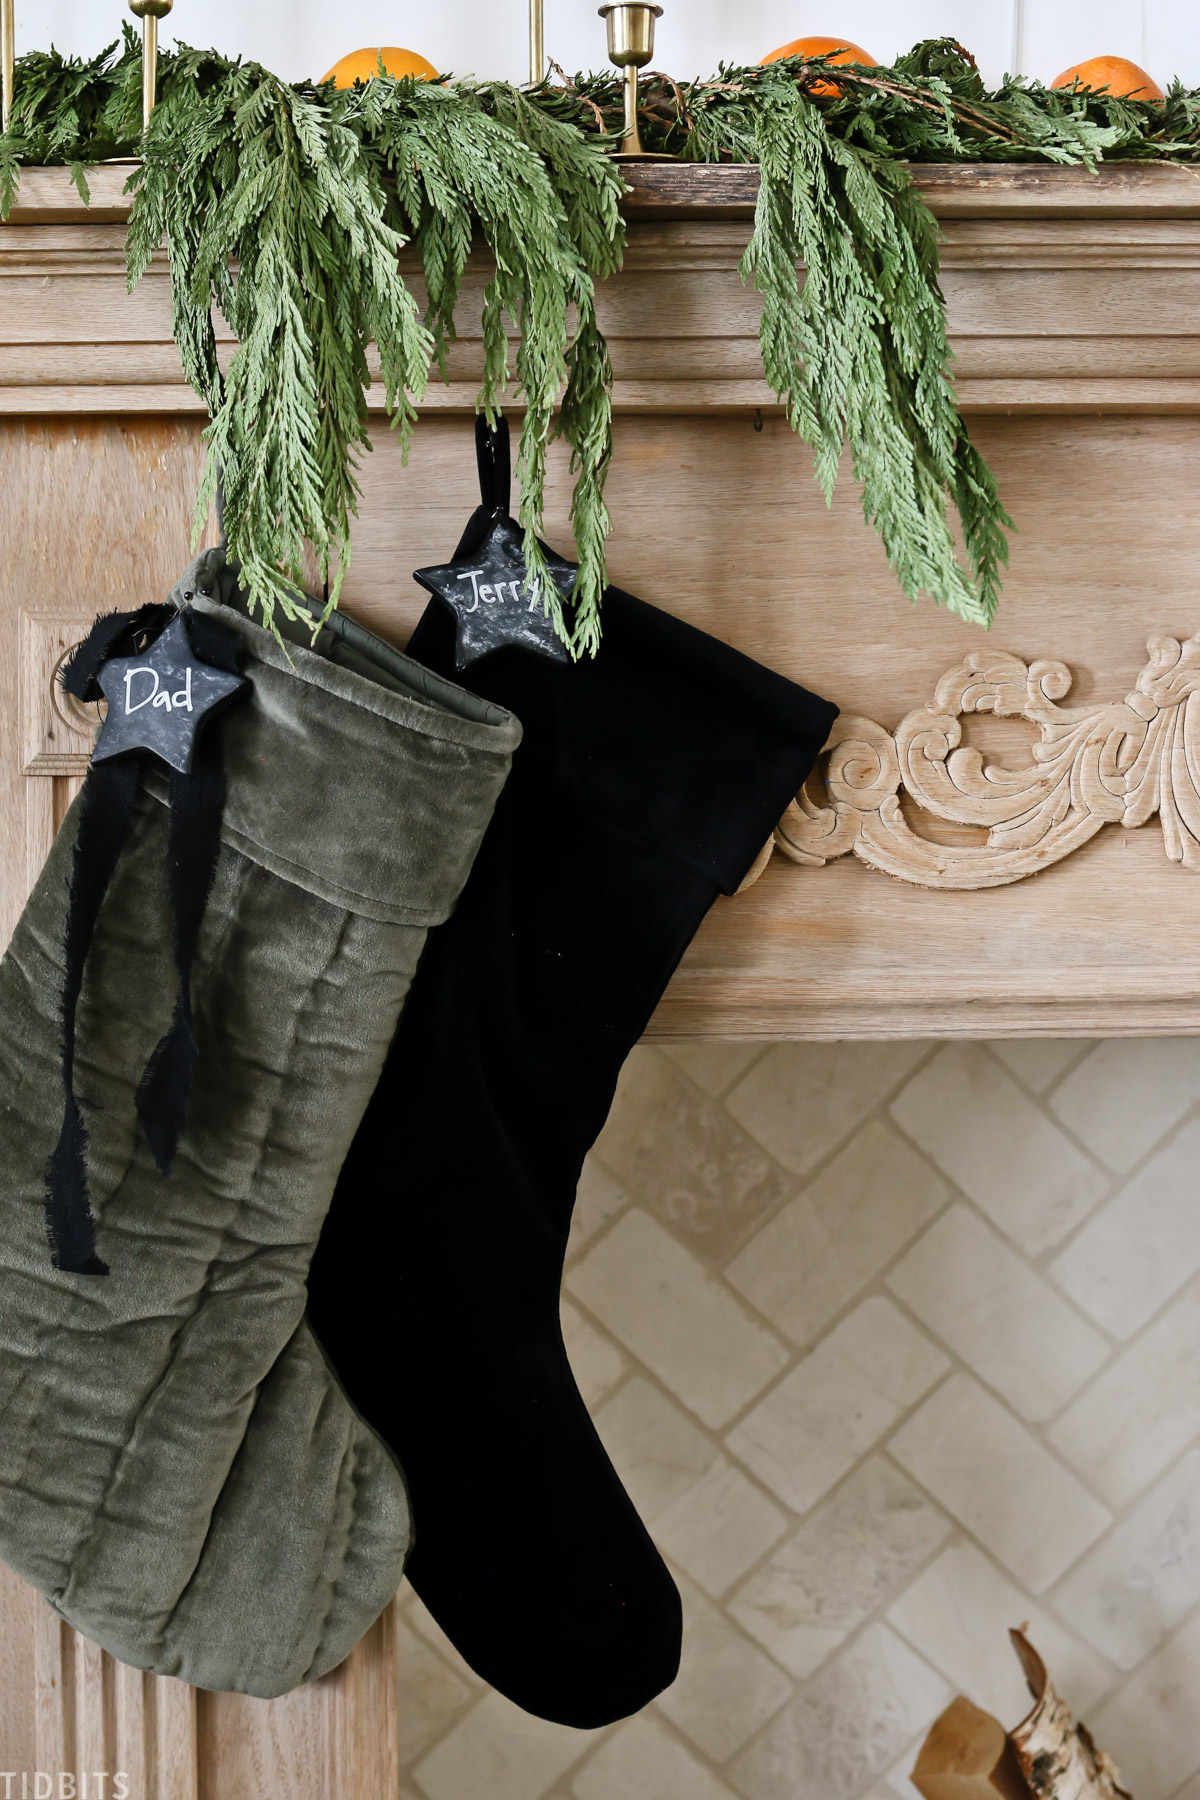 two Christmas stockings hanging from living room mantel